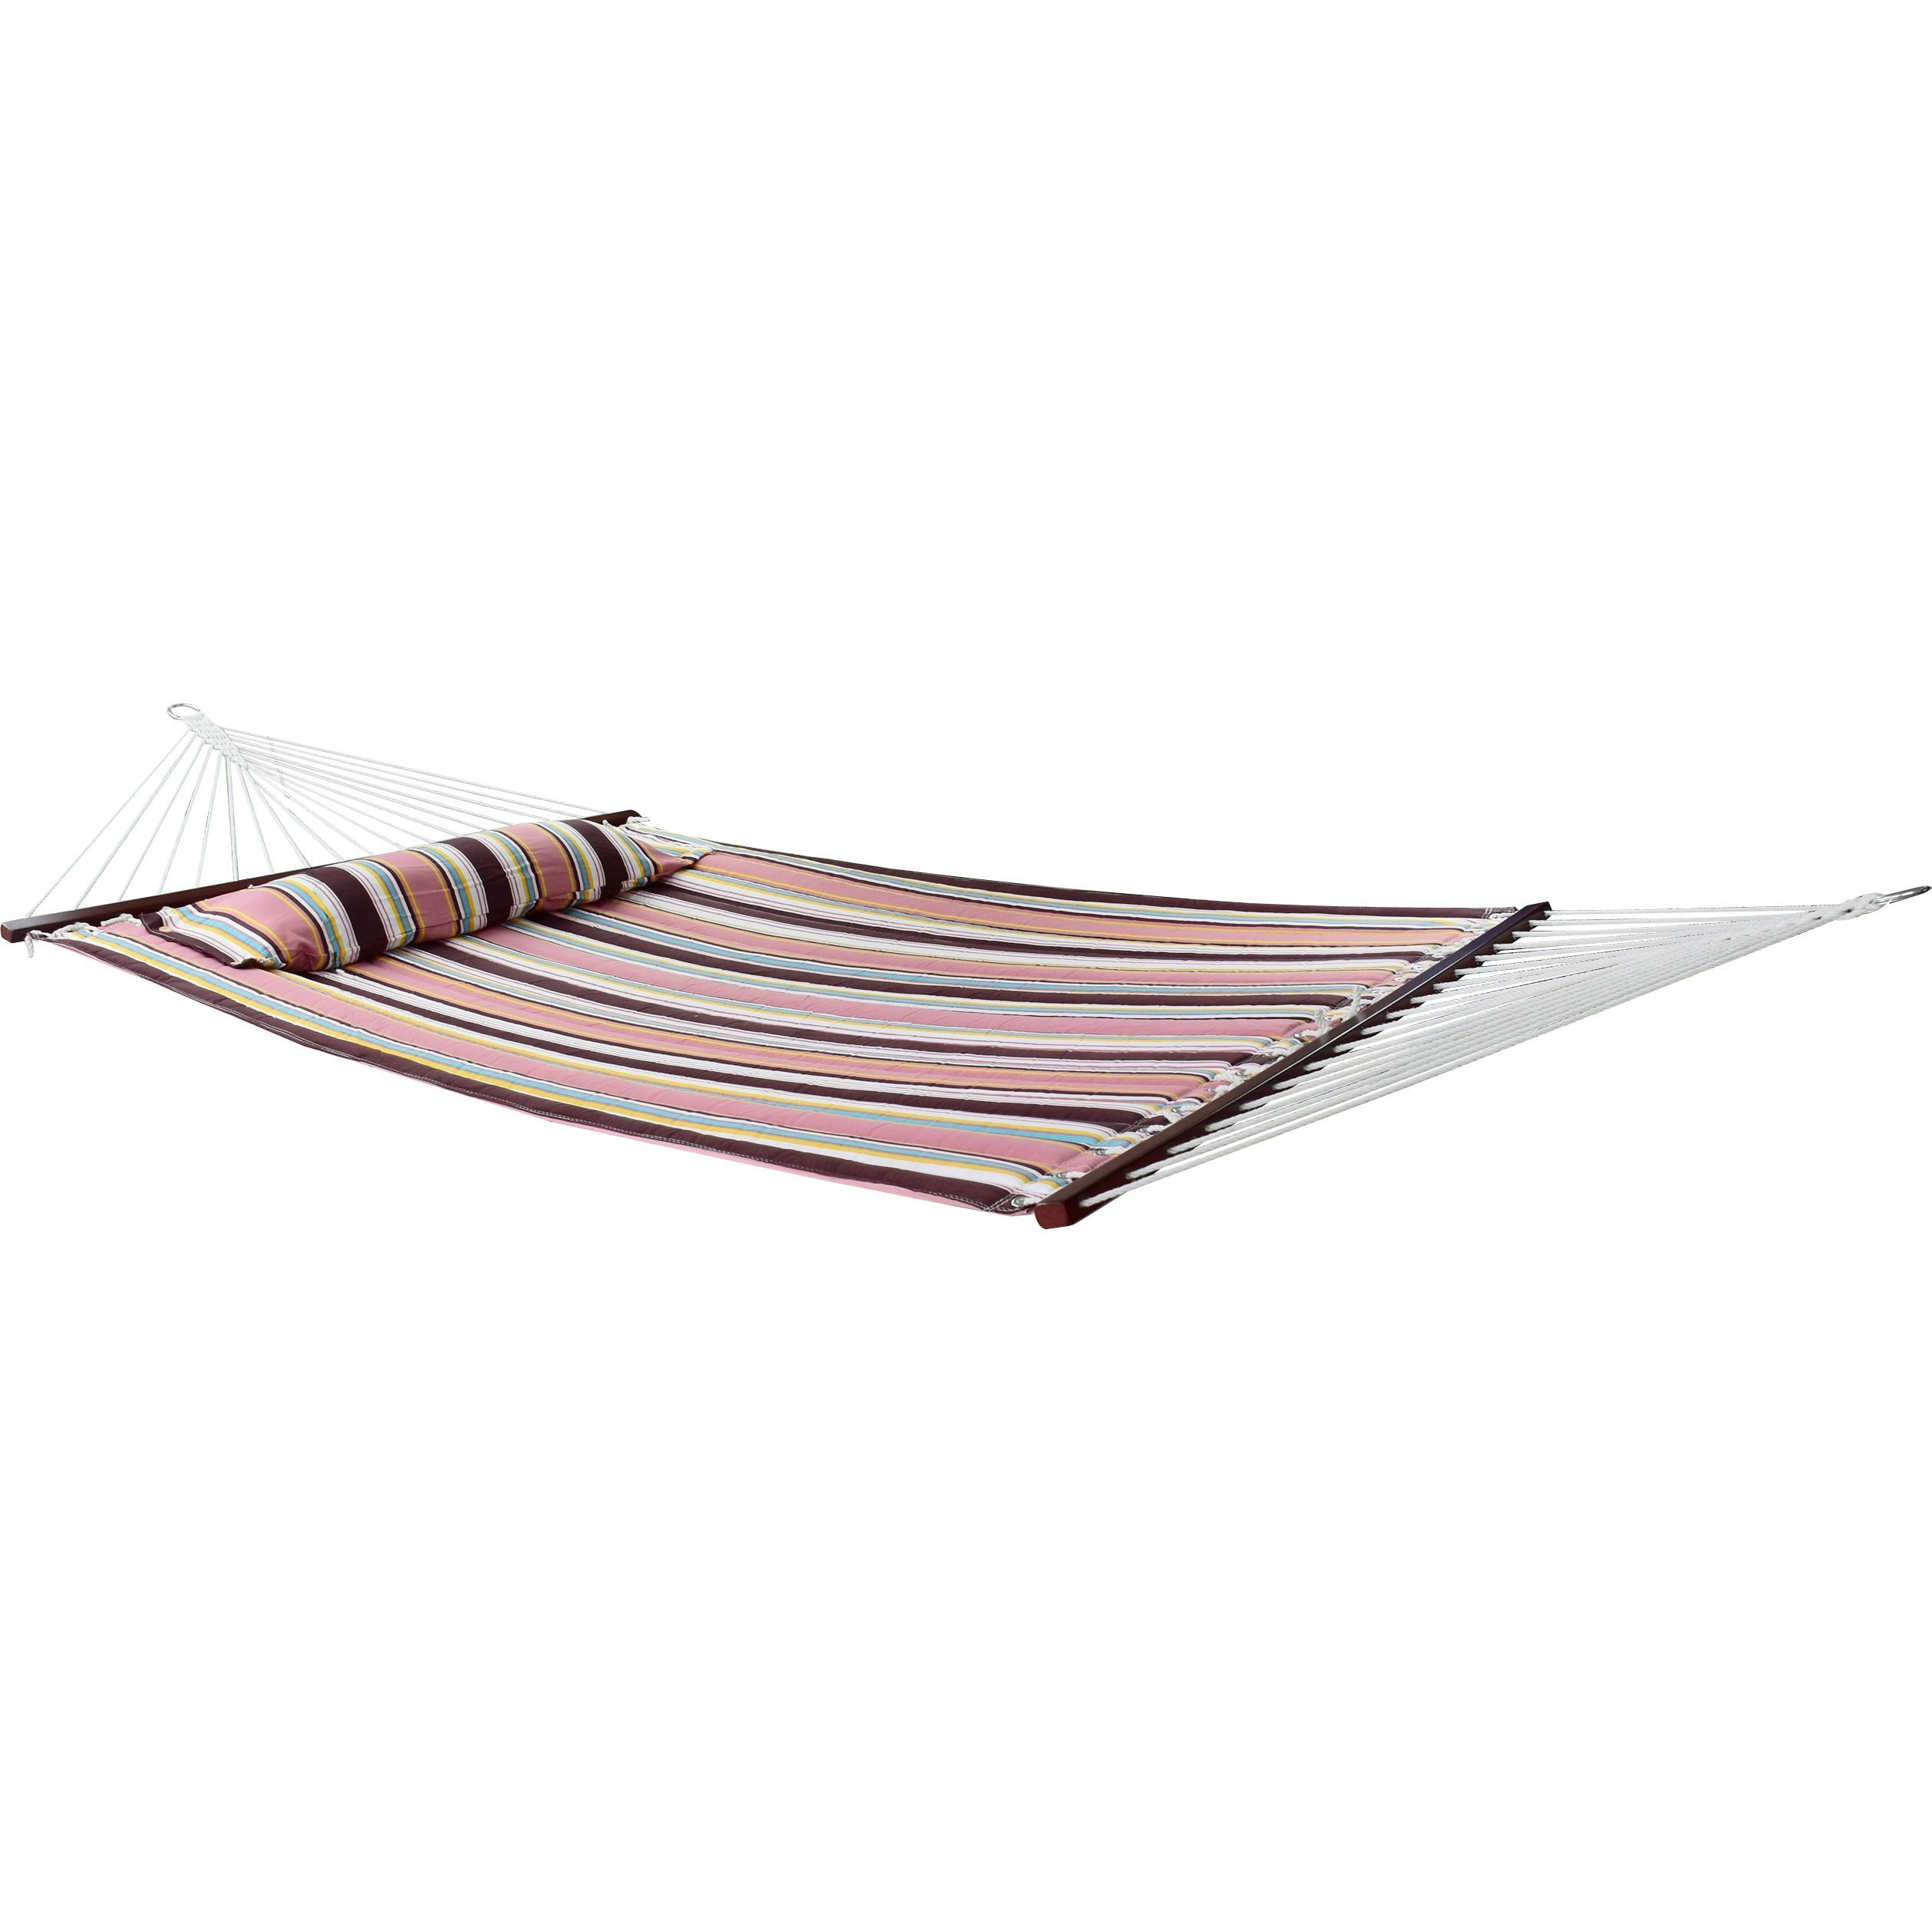 Sorbus hammock bed top includes detachable pillow and spreader bar